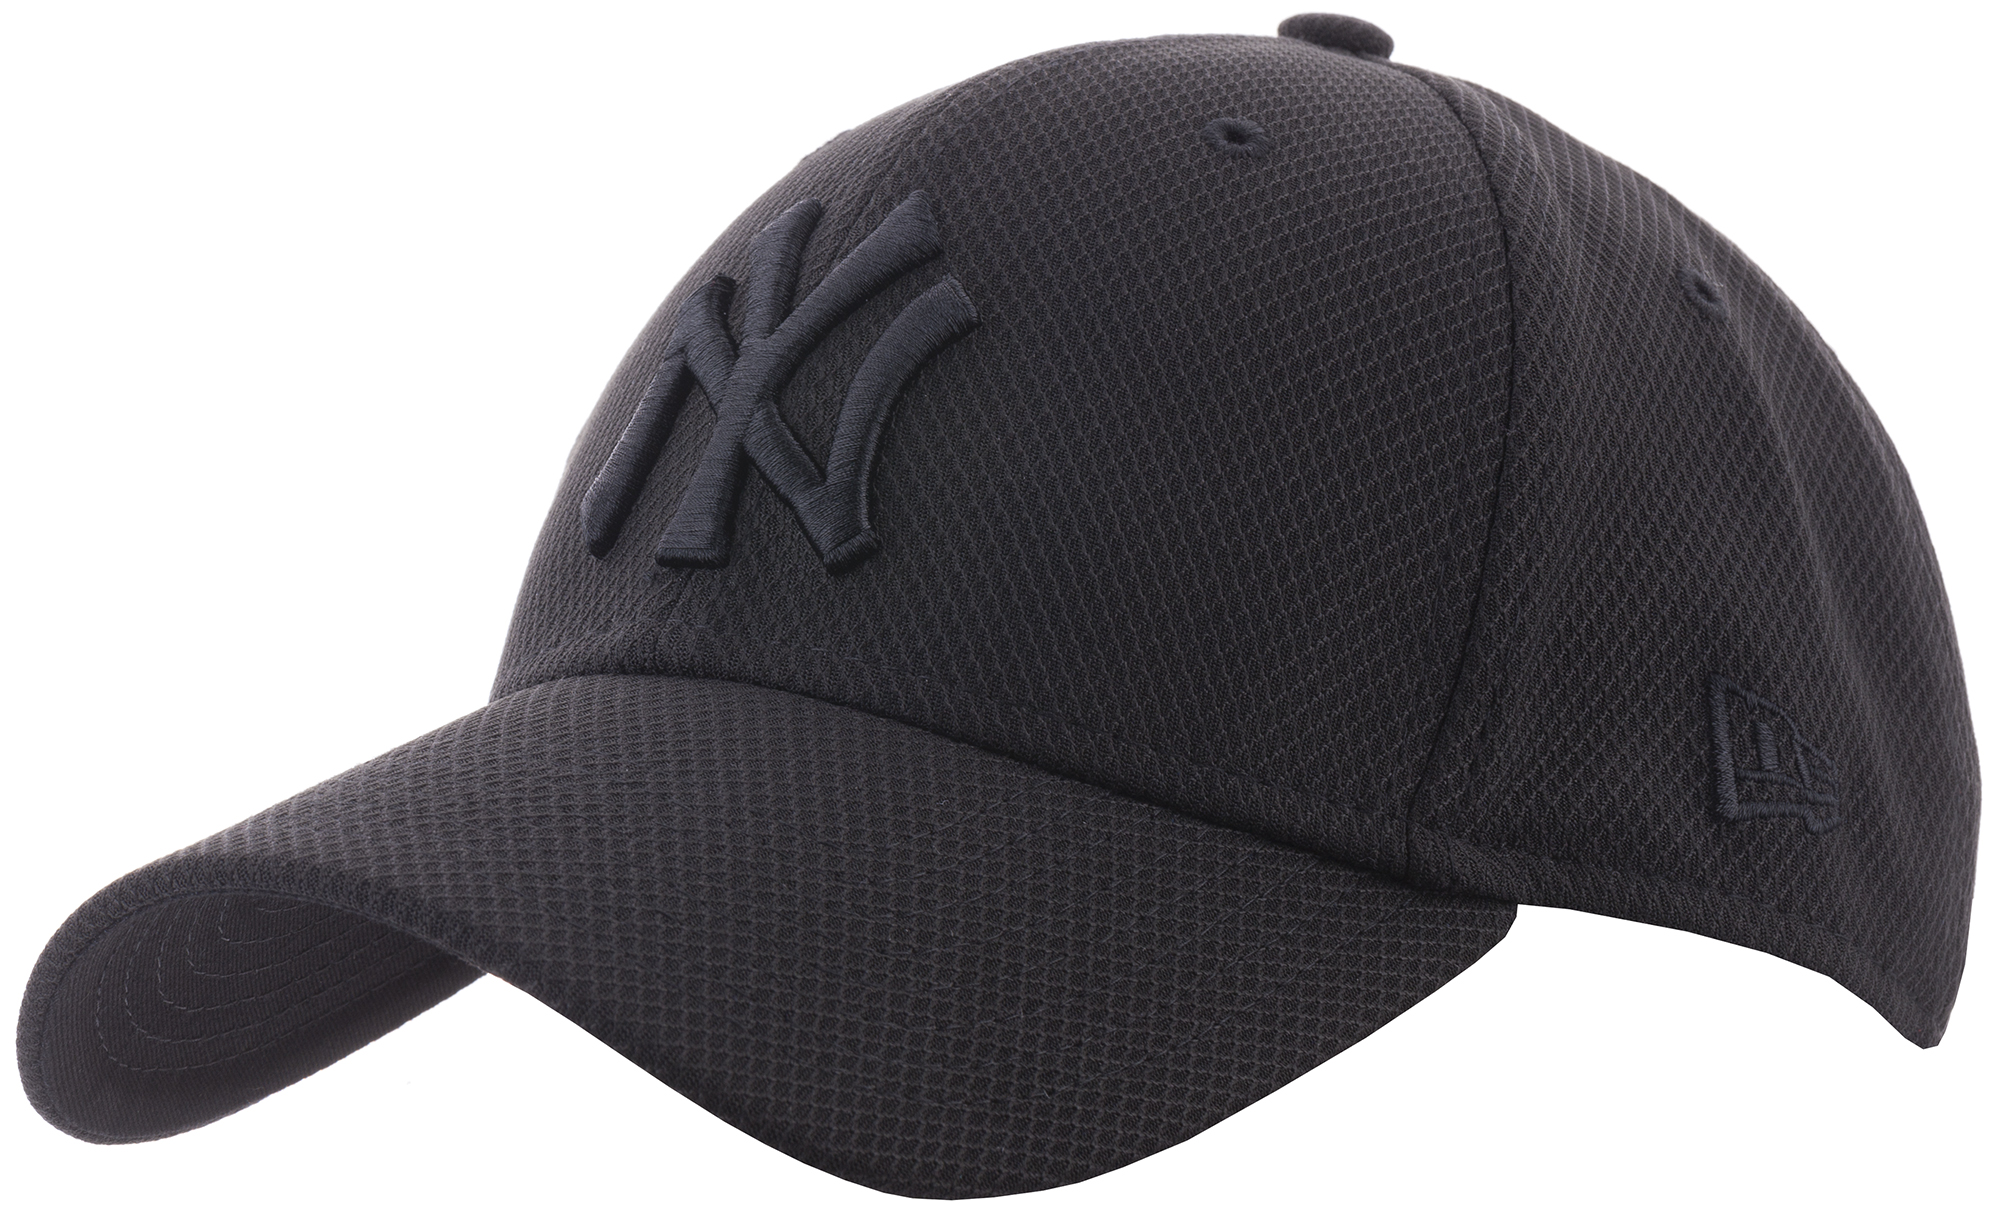 New Era Бейсболка мужская New Era Diamond Era 9Forty new era бейсболка мужская new era